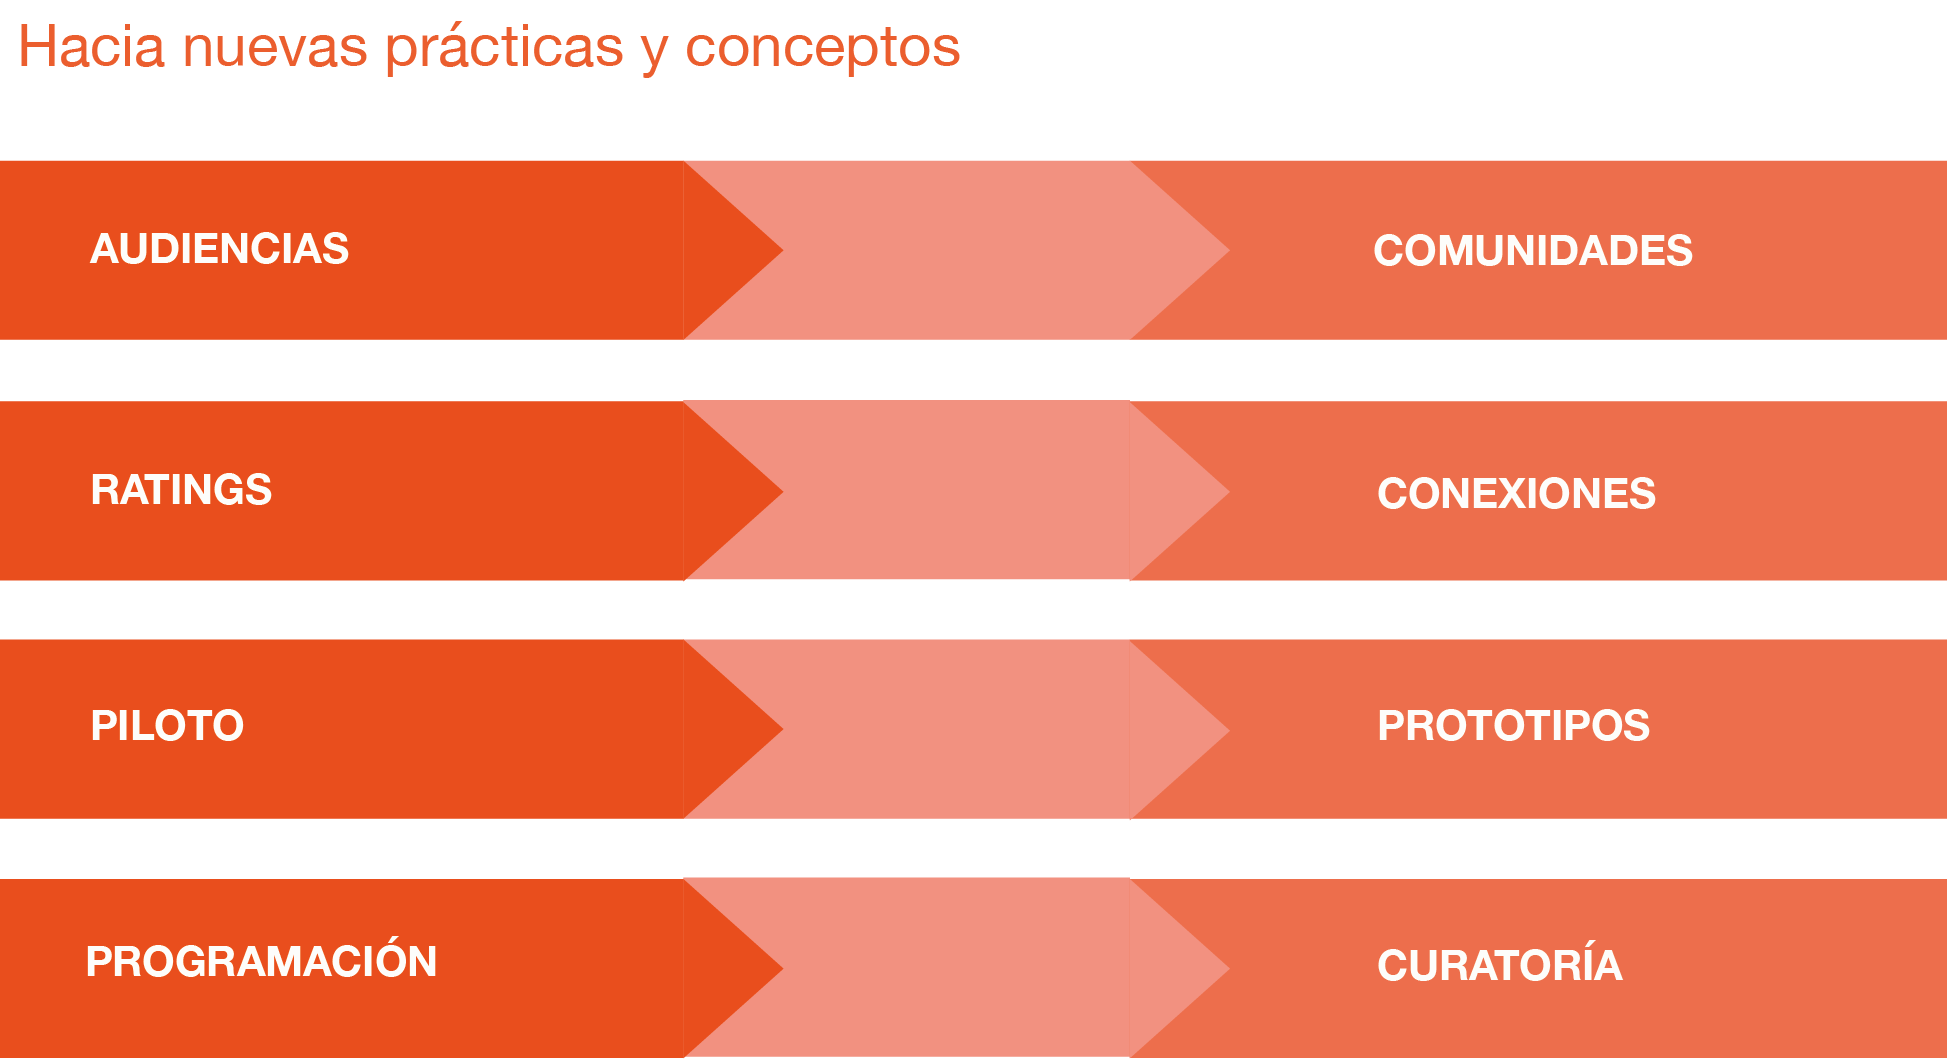 esquema-conce-practi-06.png